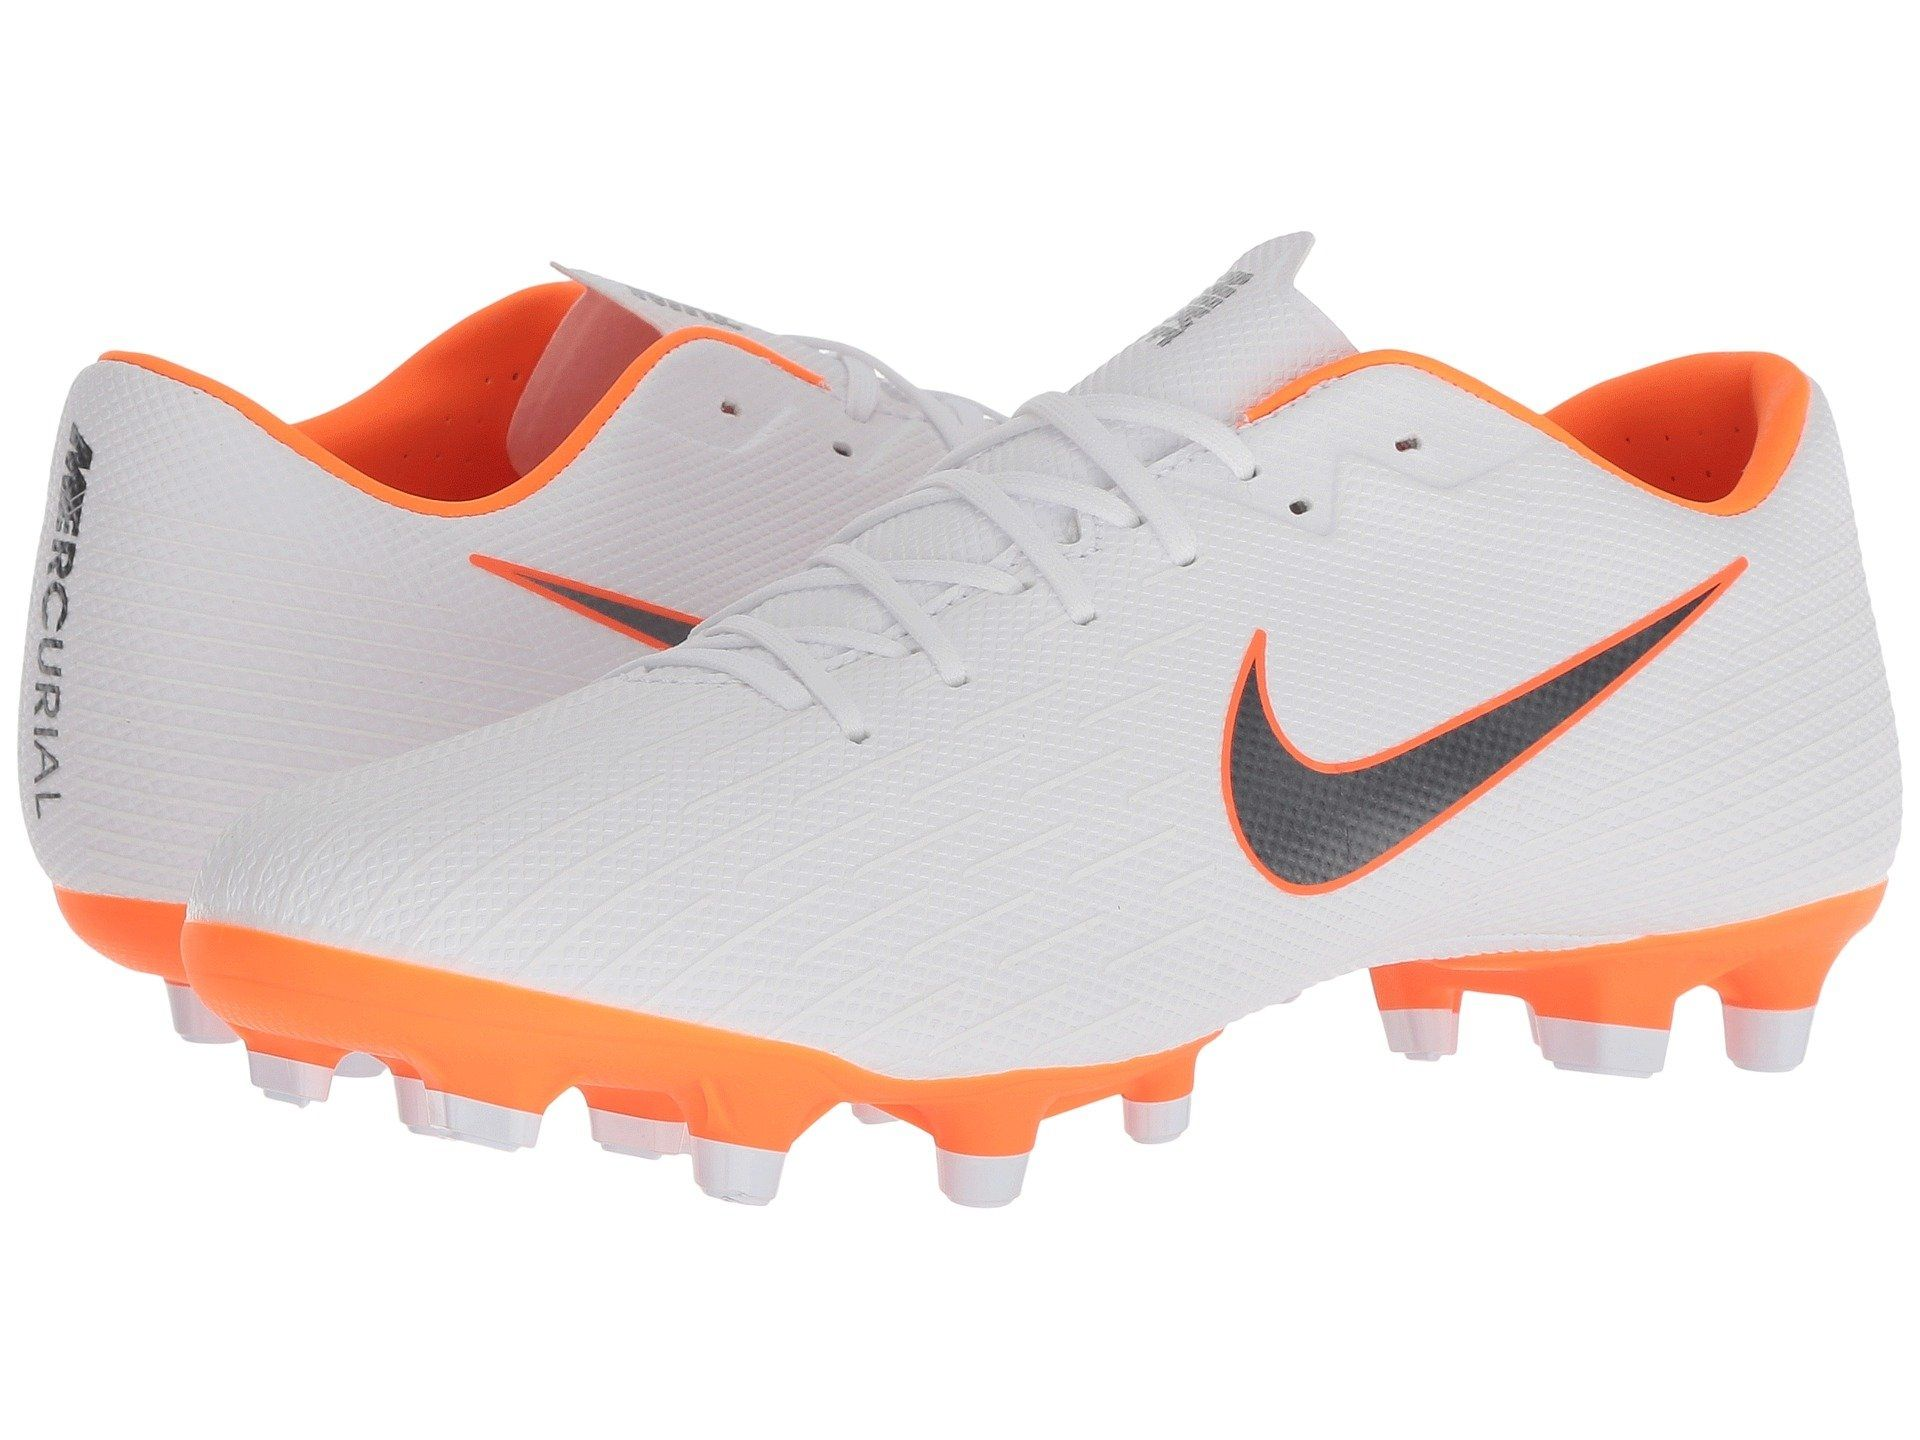 48c52340929c Nike Nike Vapor 12 Academy MG Price in Egypt | Jumia | Shoes | kanbkam